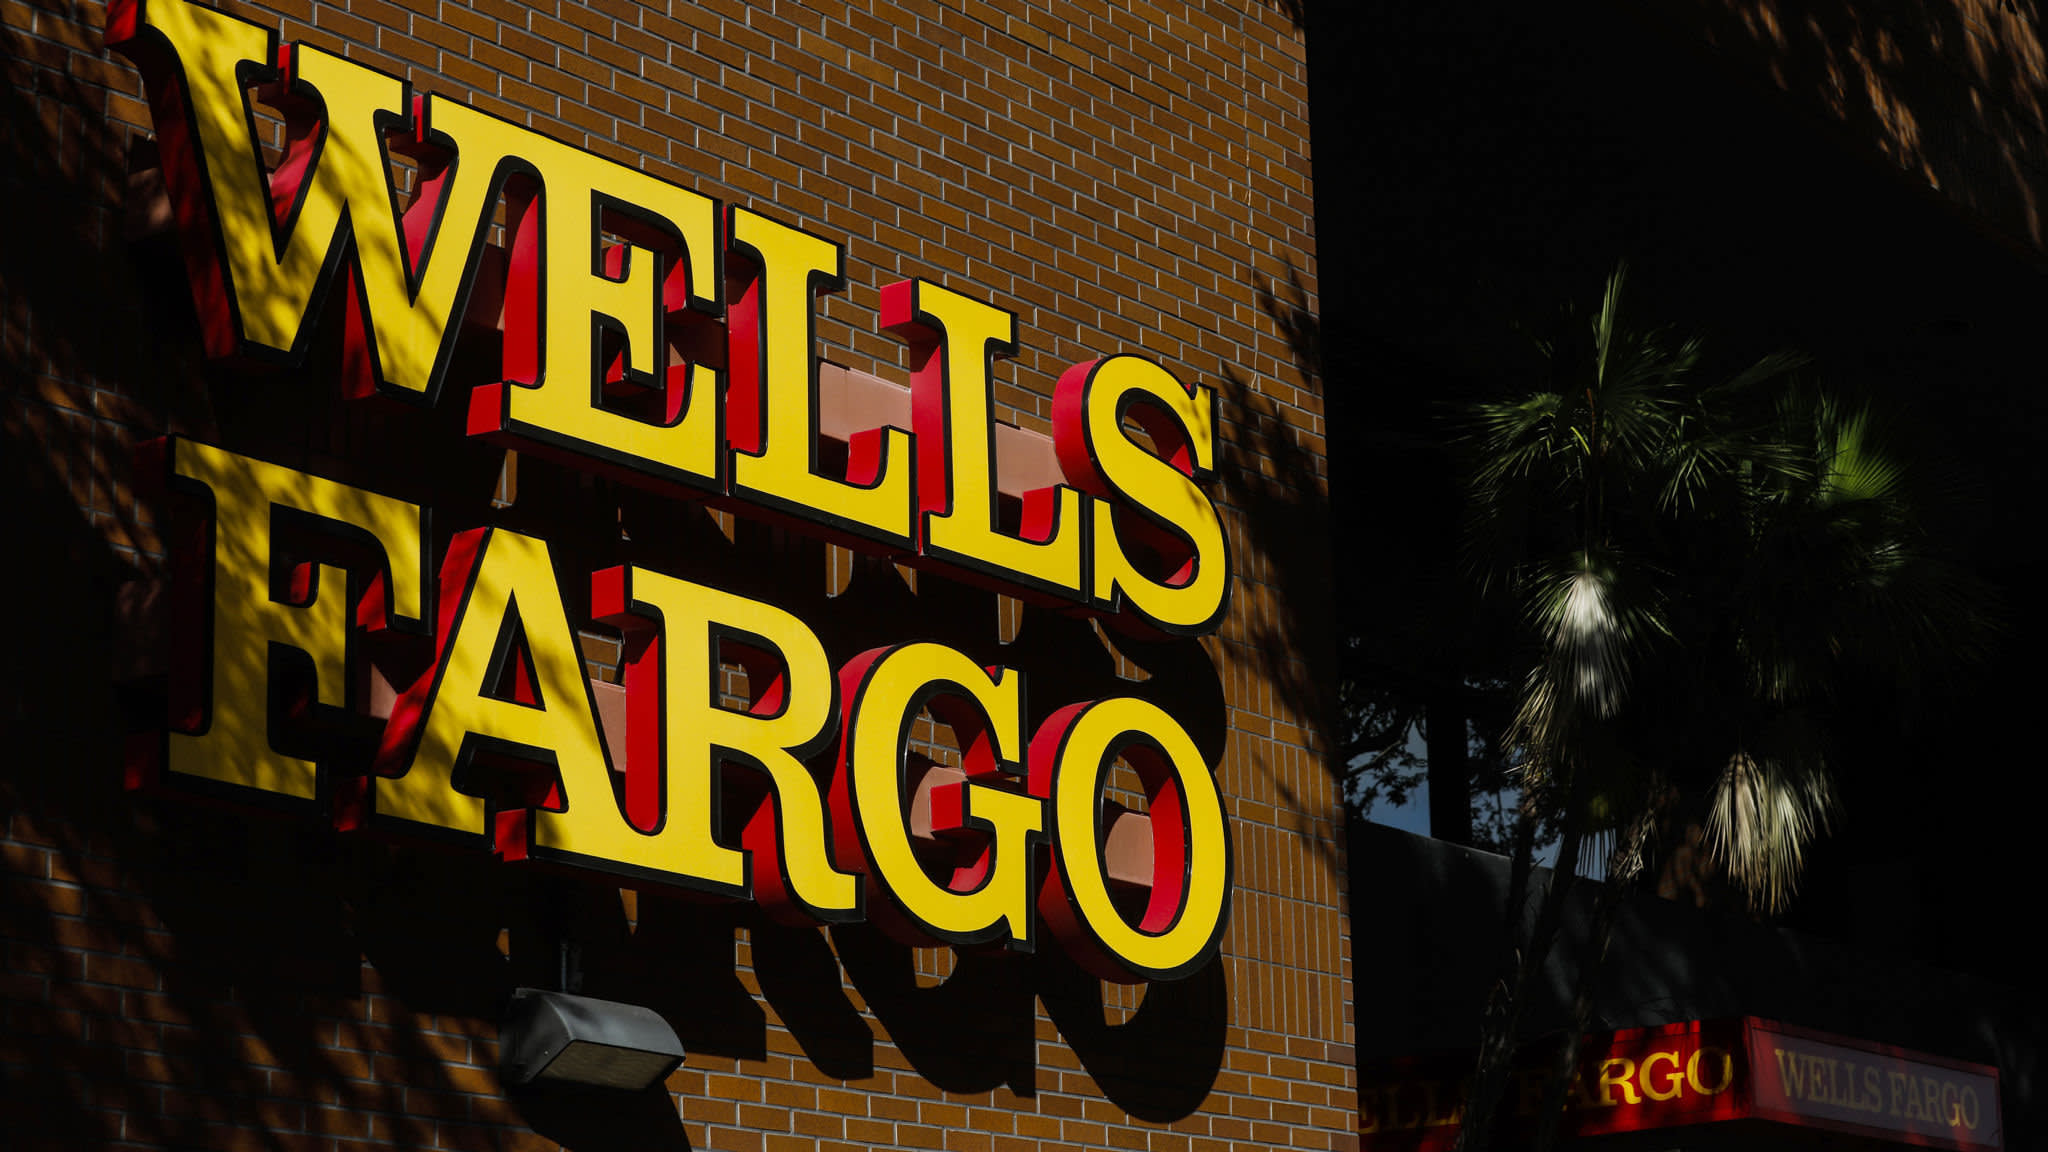 Growth remains scarce at Wells Fargo